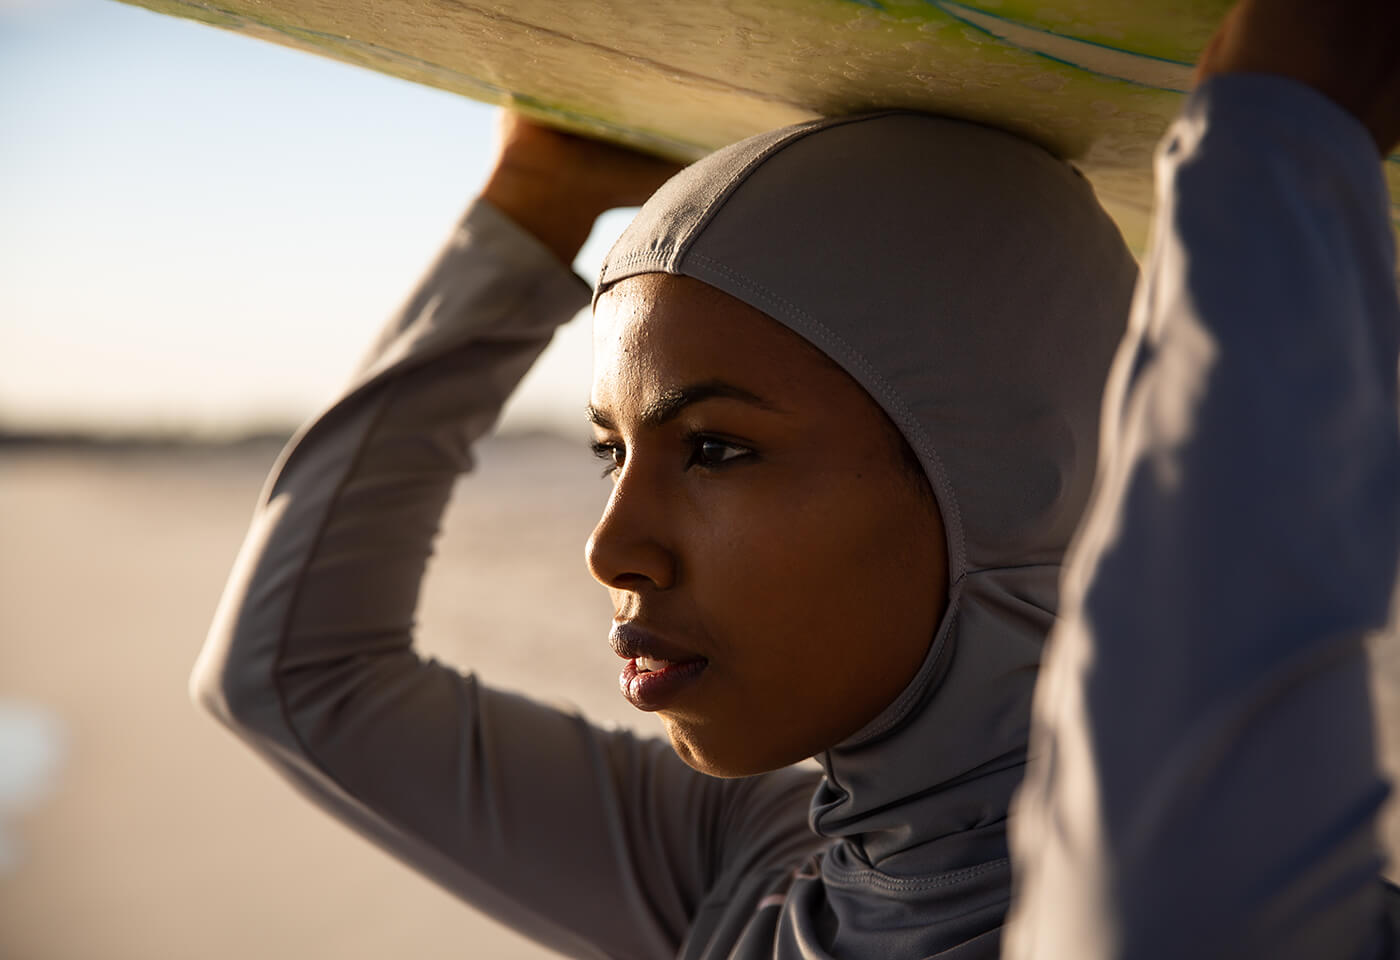 photo of a Muslim surfer. Image by Attila Csaszar